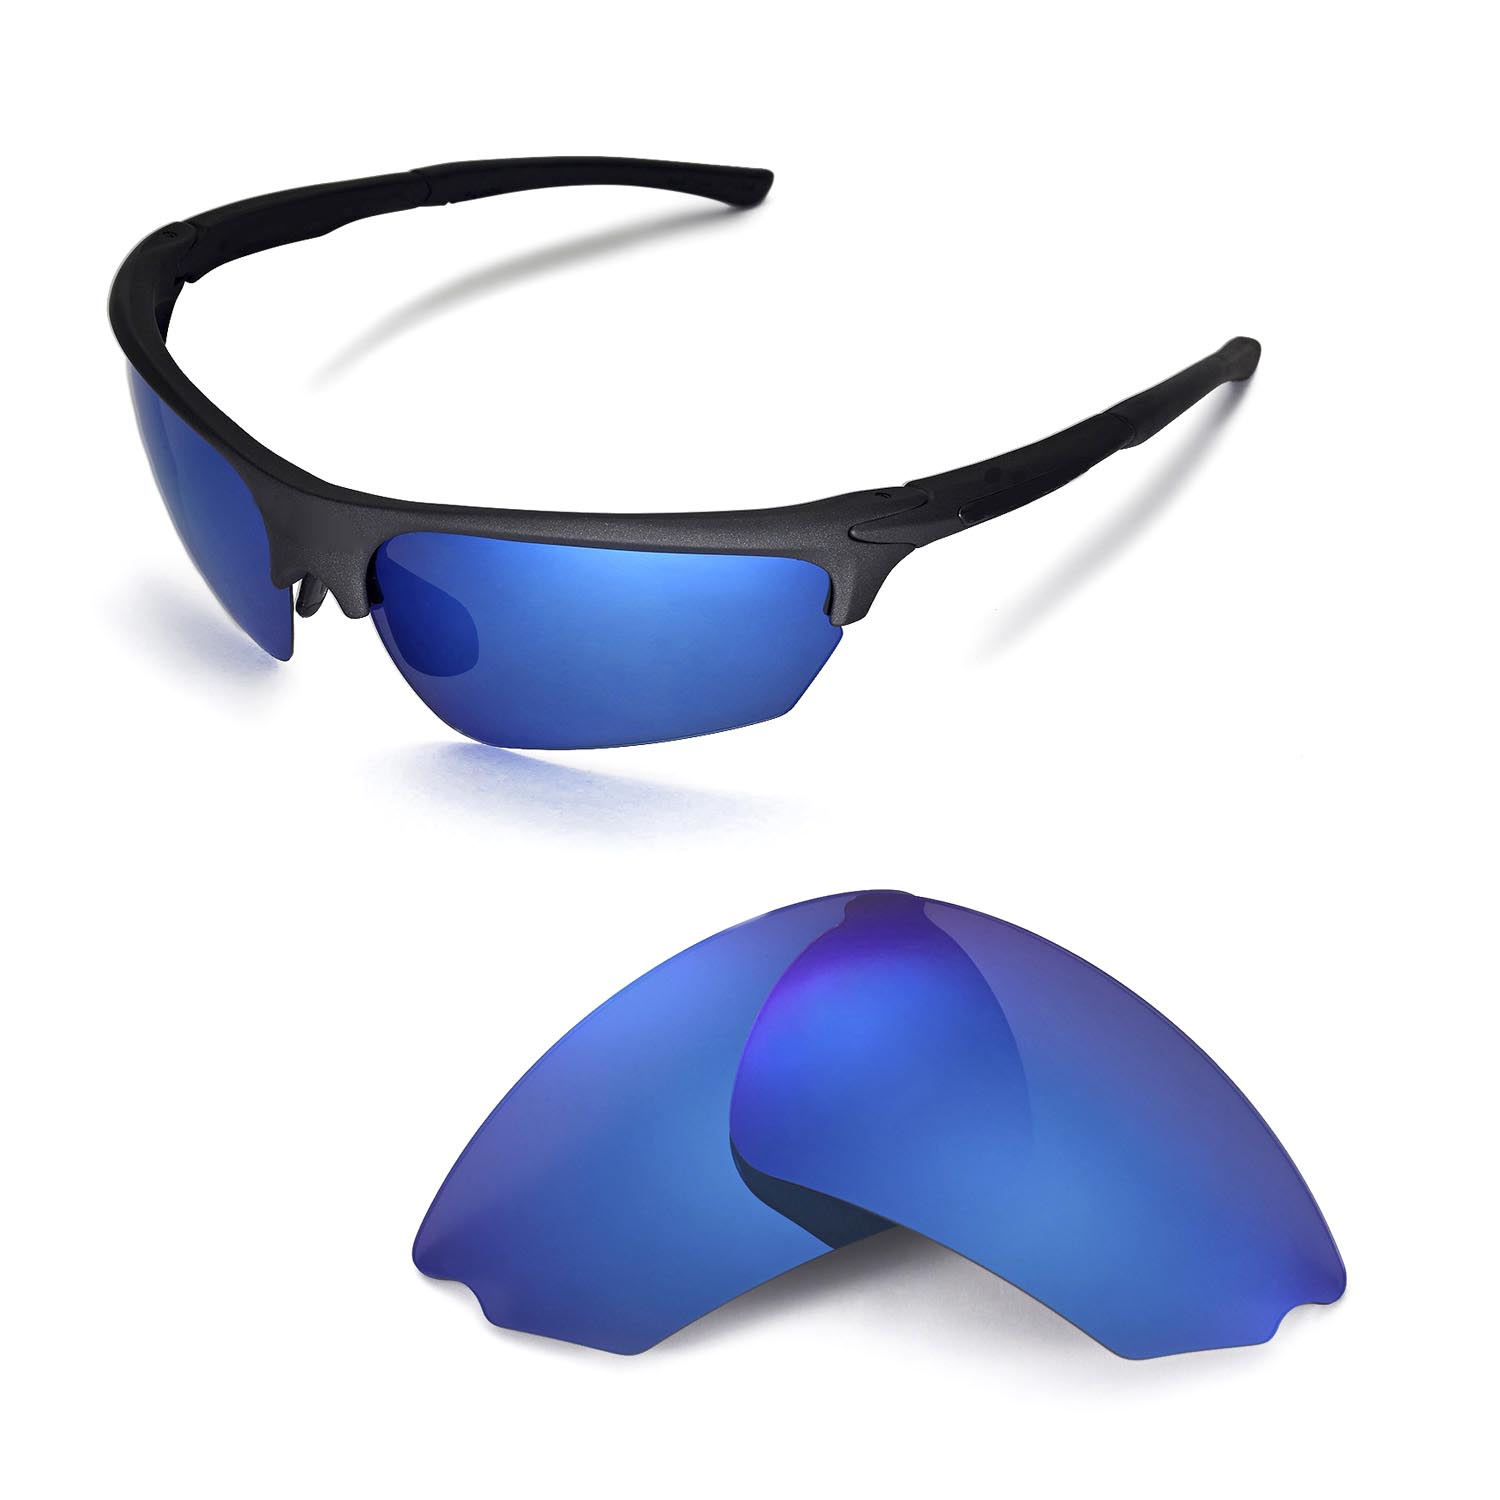 c904d5fe43 Details about New Walleva Polarized Ice Blue Lenses For Rudy Project Noyz  Sunglasses